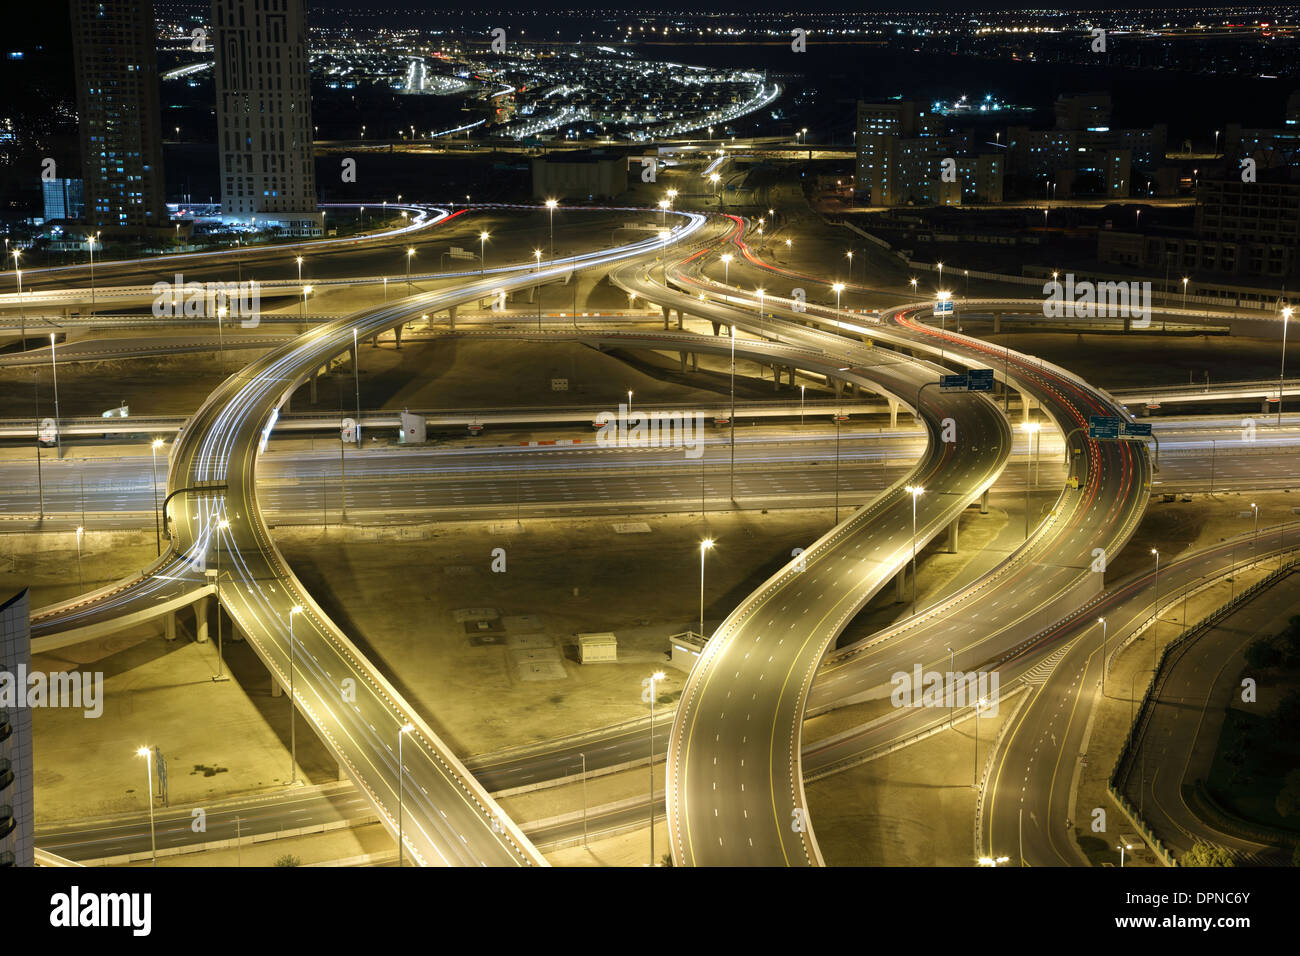 Highway intersection at night. Dubai, UAE - Stock Image